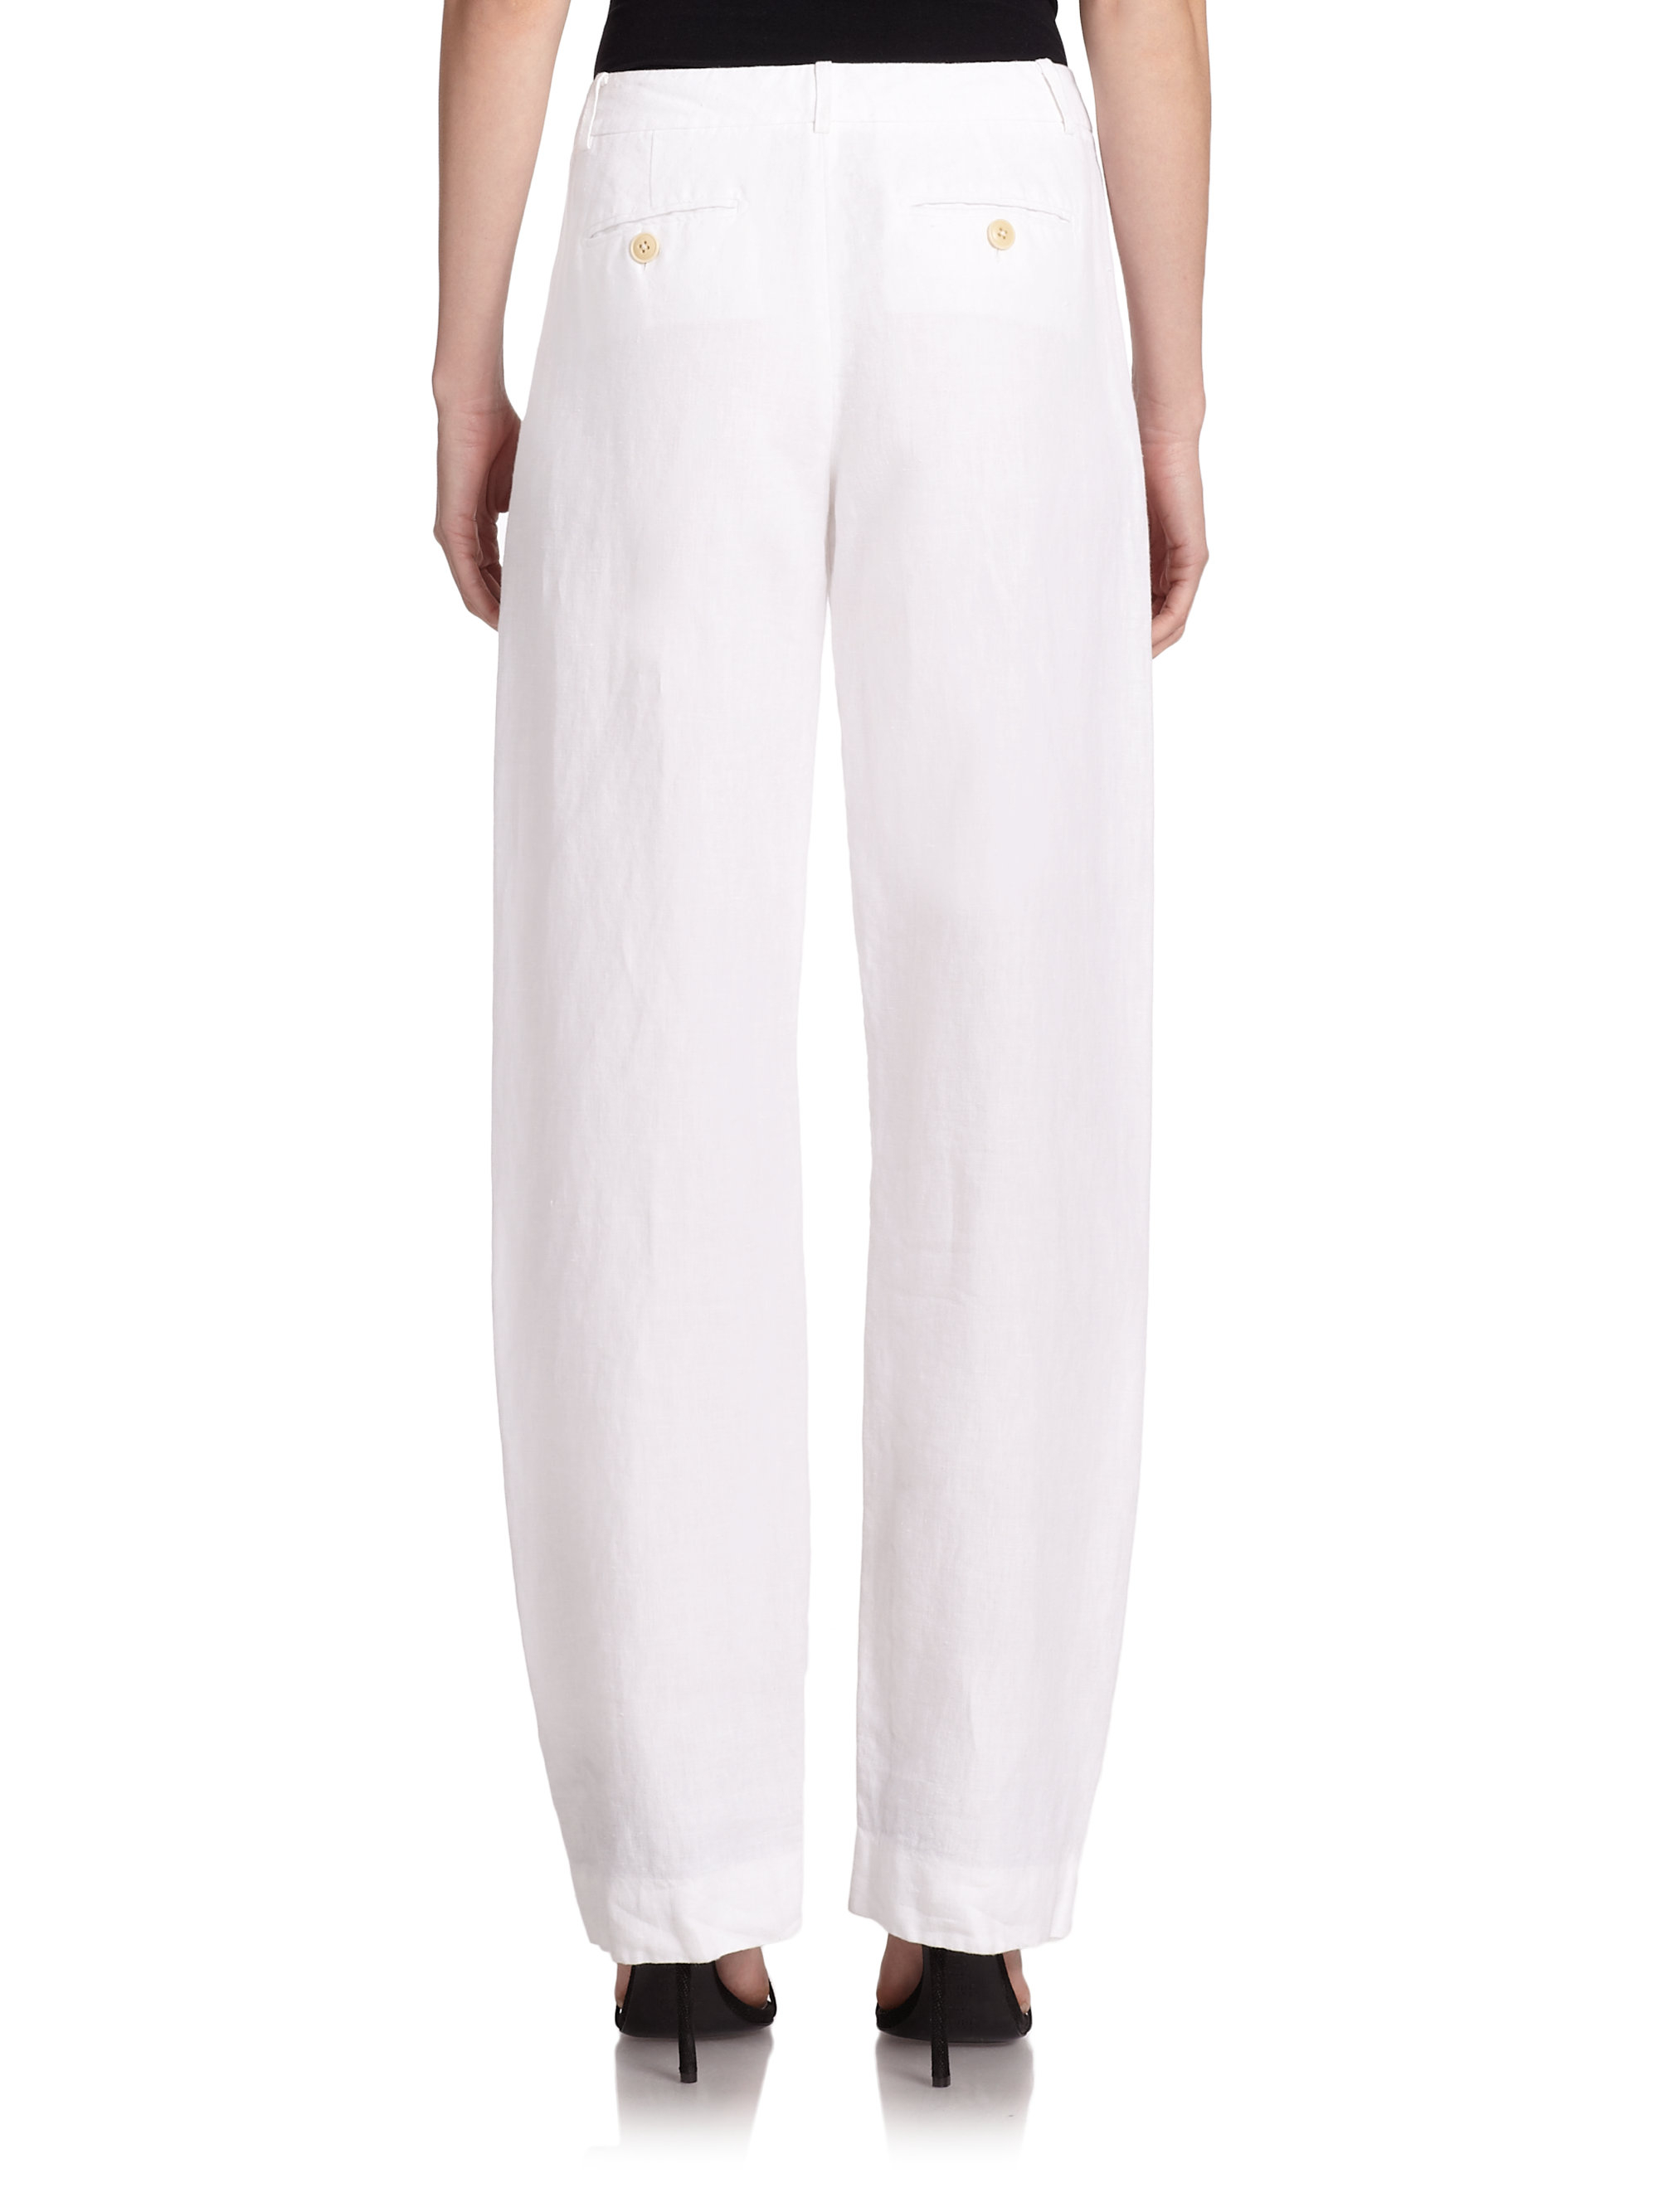 Free shipping on trouser & wide-leg pants for women at makeshop-zpnxx1b0.cf Shop for wide-leg pants & trousers in the latest colors & prints from top brands like Topshop, makeshop-zpnxx1b0.cf, NYDJ, Vince Camuto & more. Enjoy free shipping & returns.